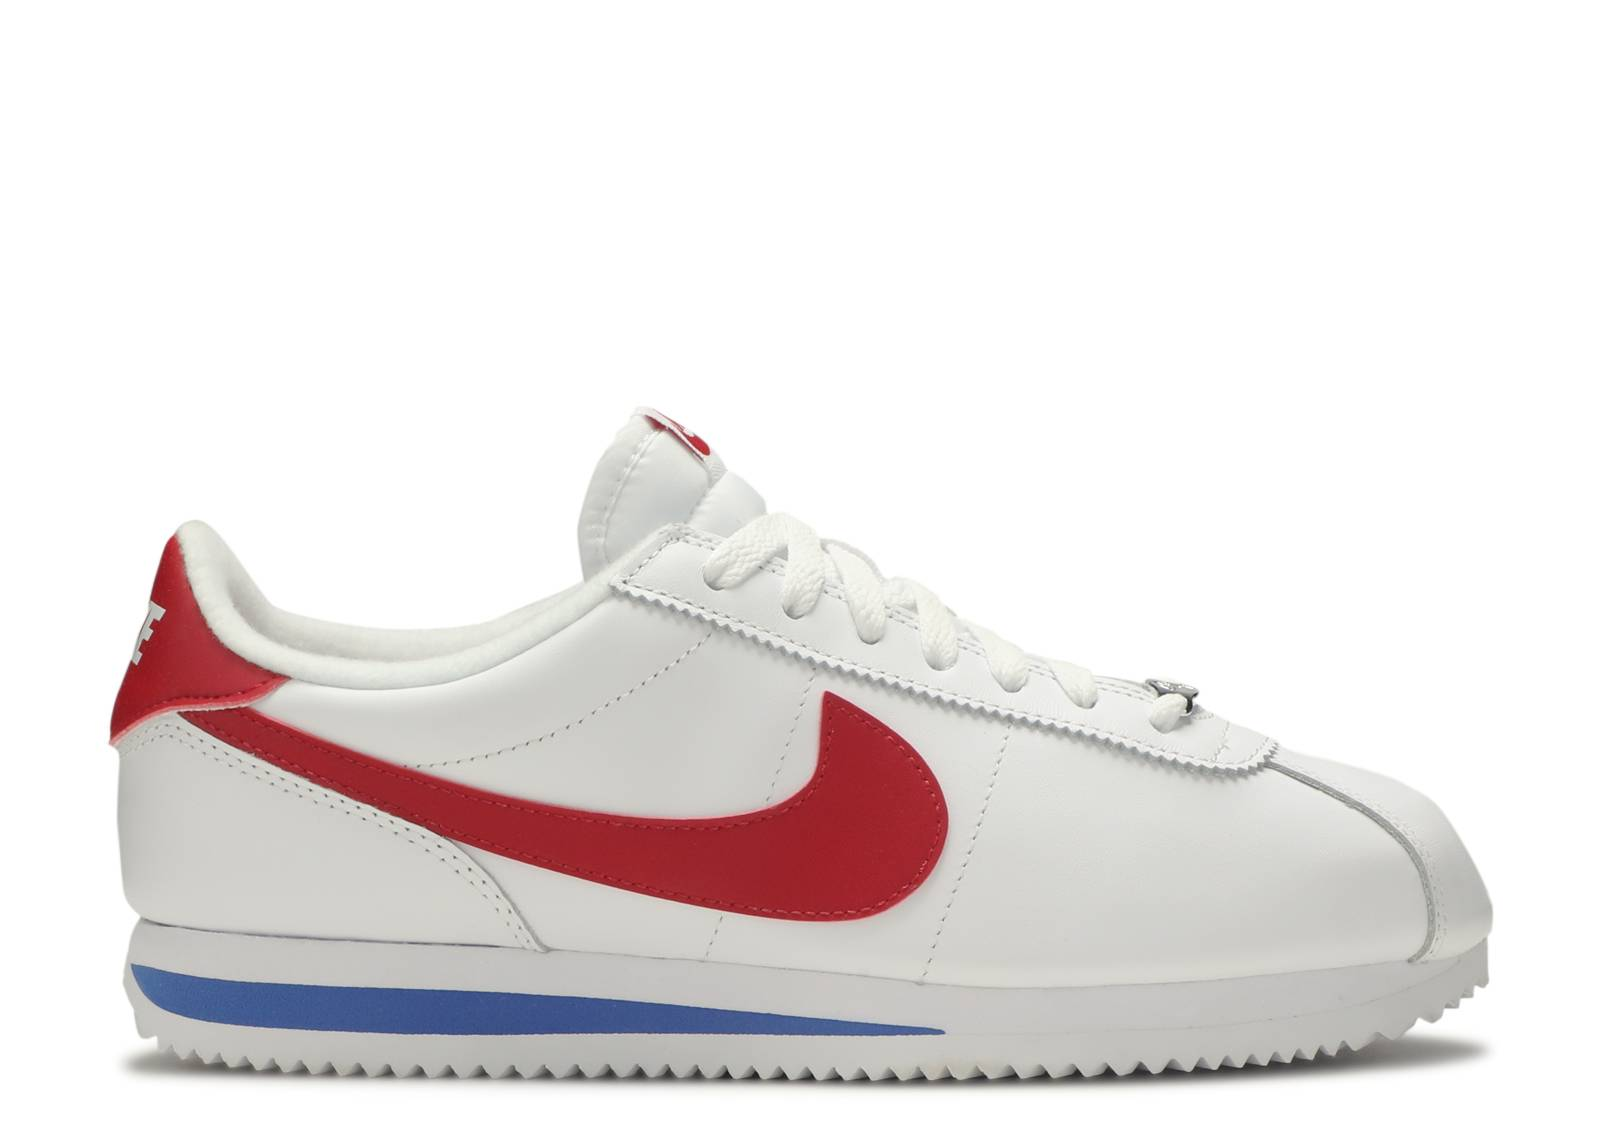 8d799e4074d9 Cortez Basic Leather Og